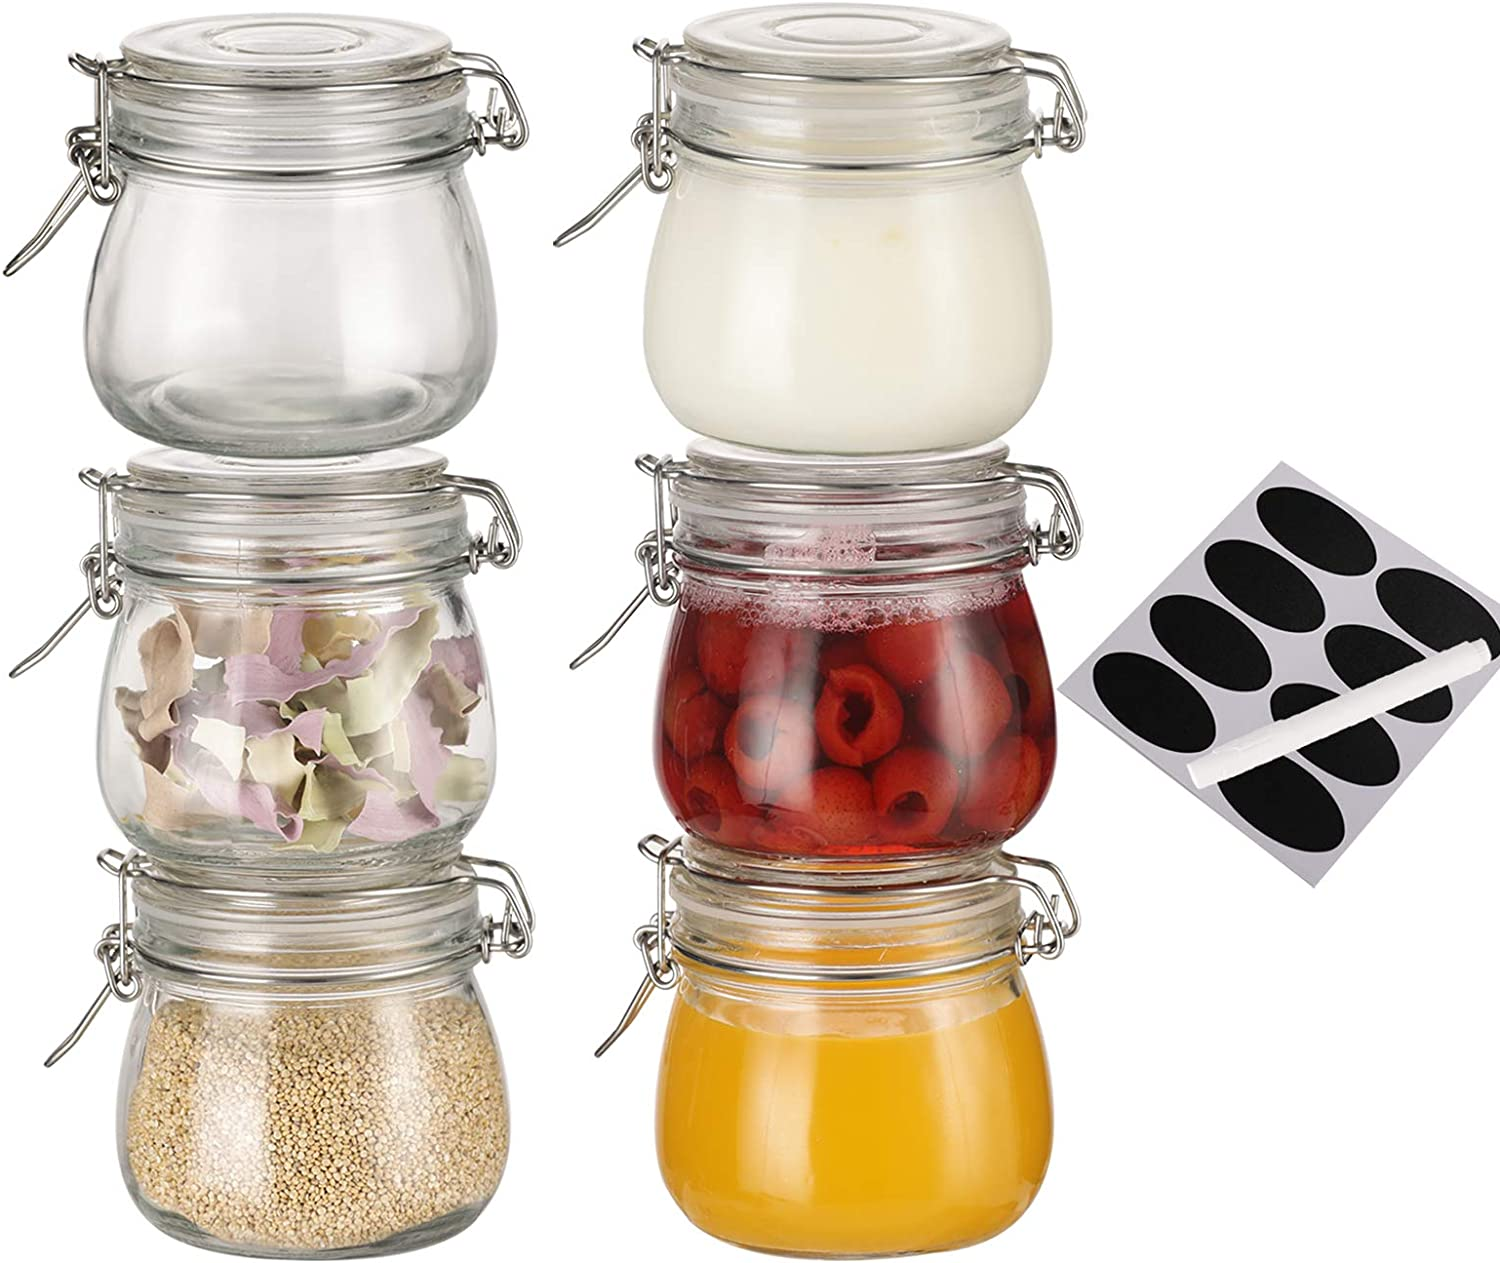 16oz Airtight Glass Jar Sealable Containers ,Food Storage Cereal containers ,with Airtight and Clamp Lids Canister(set of 6)